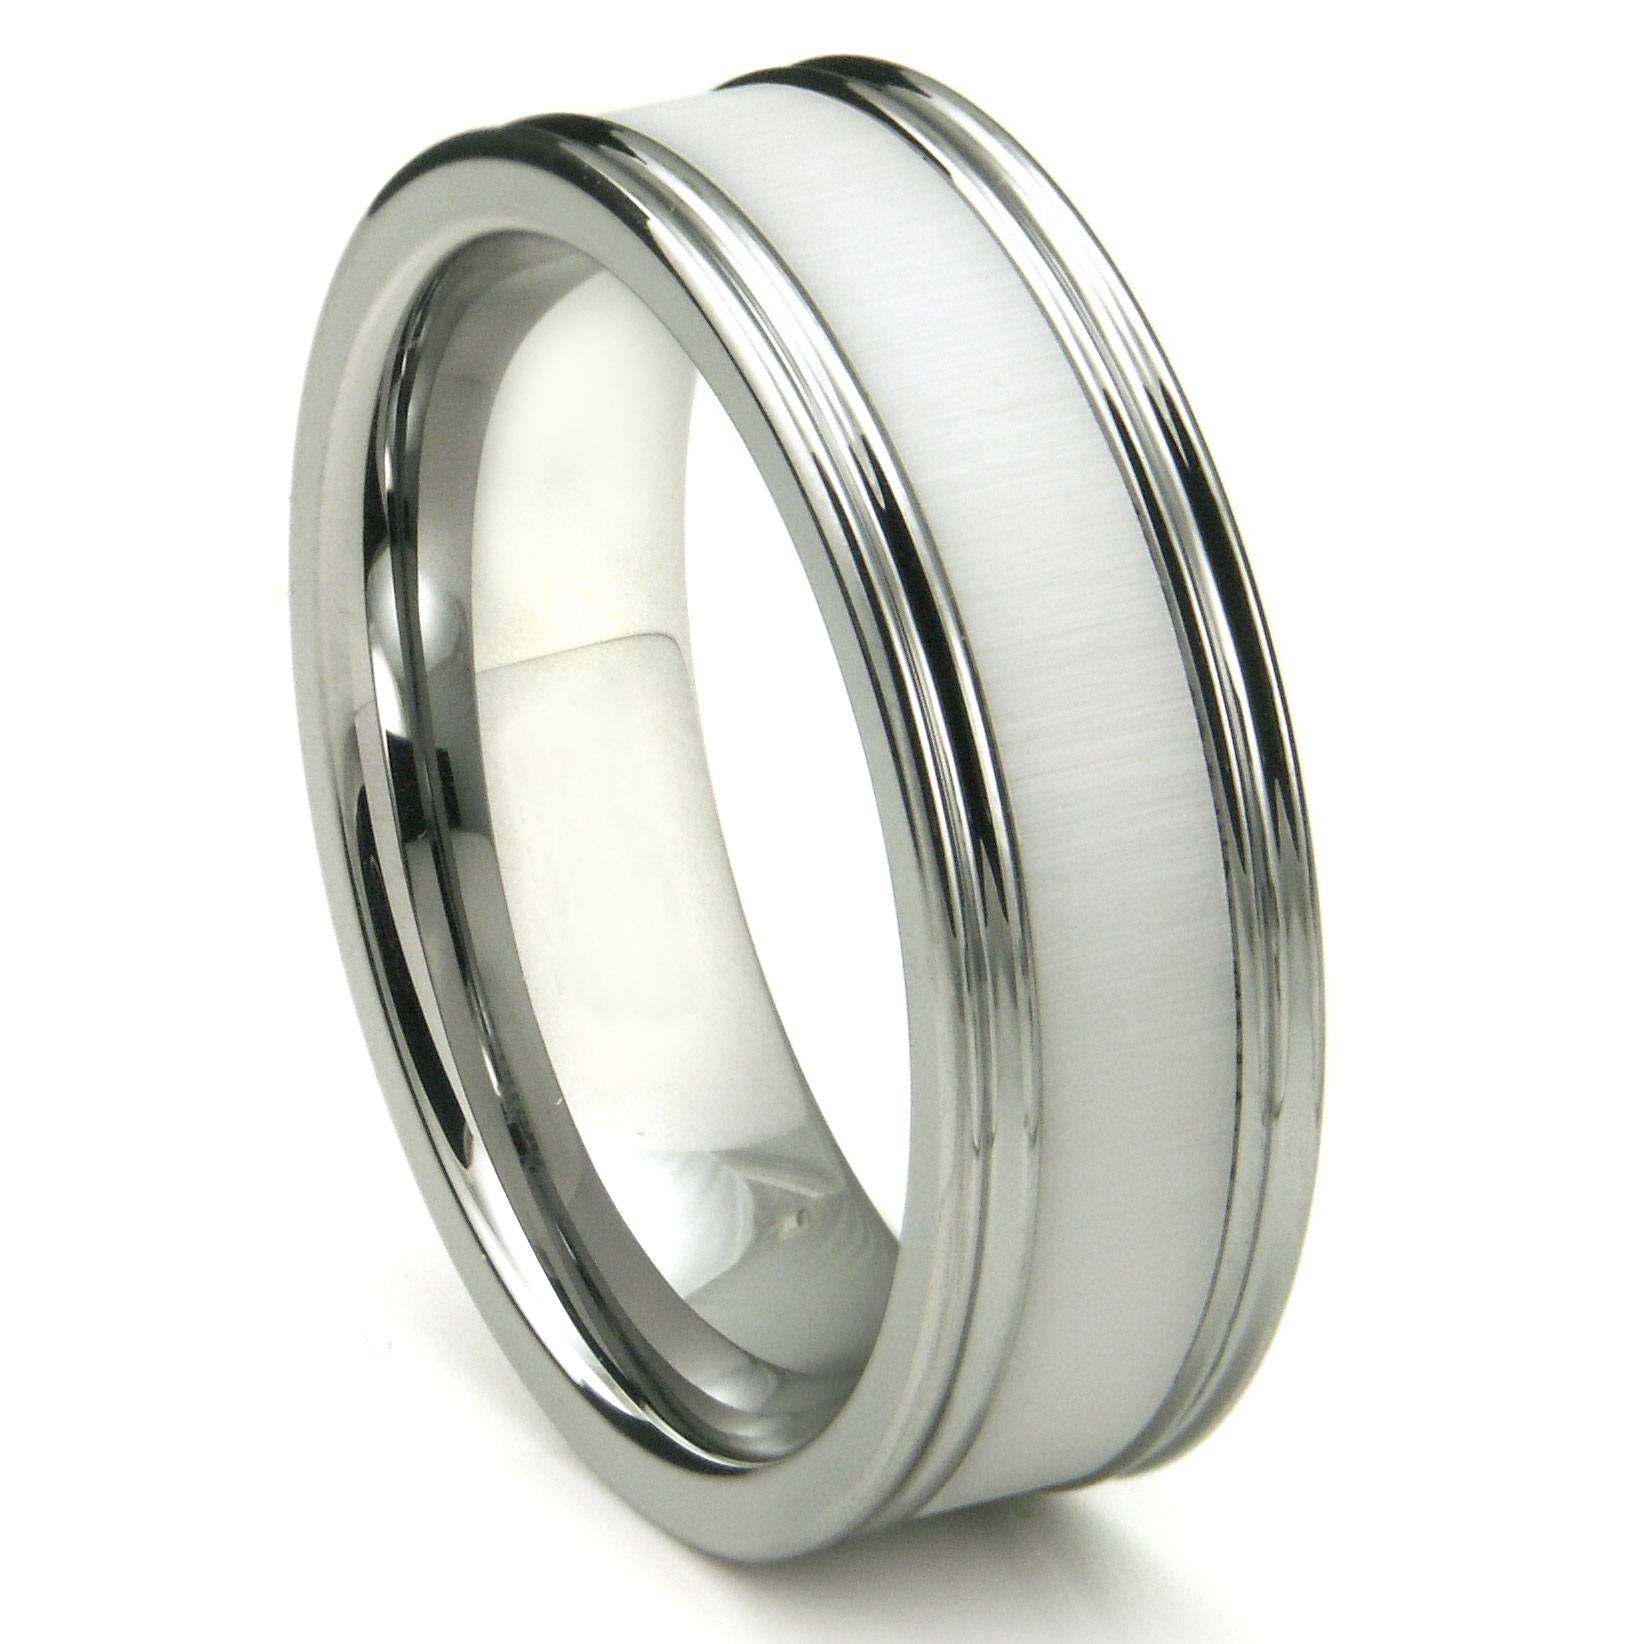 Tungsten Carbide White Ceramic Inlay Wedding Band Ring W In Strongest Metal Wedding Bands (View 14 of 15)